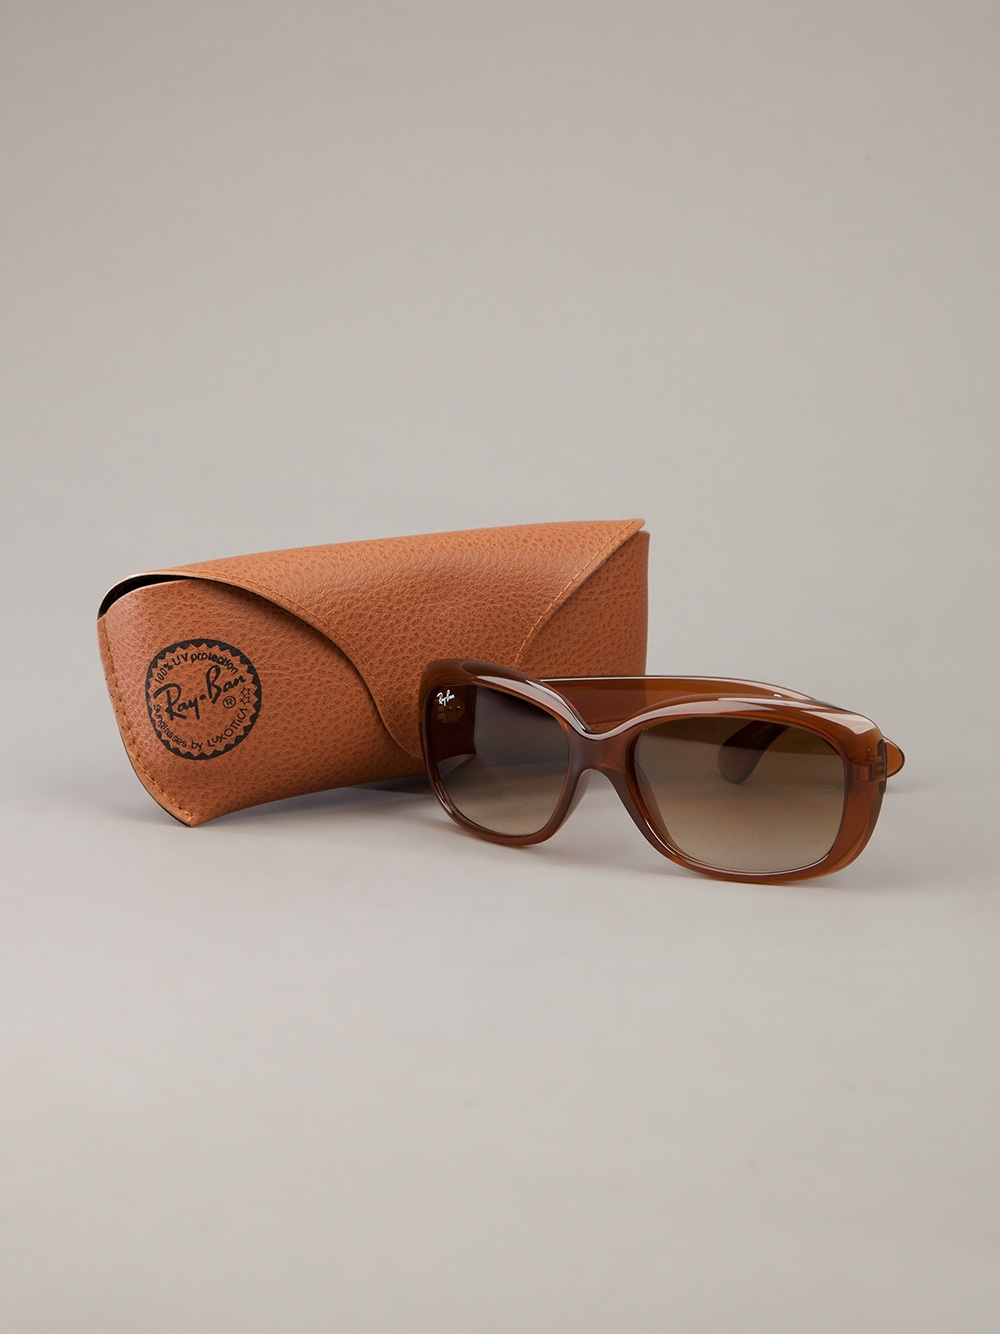 Maui Jim Warranty >> Ray-Ban Thick Framed Glasses in Brown (Orange) - Lyst